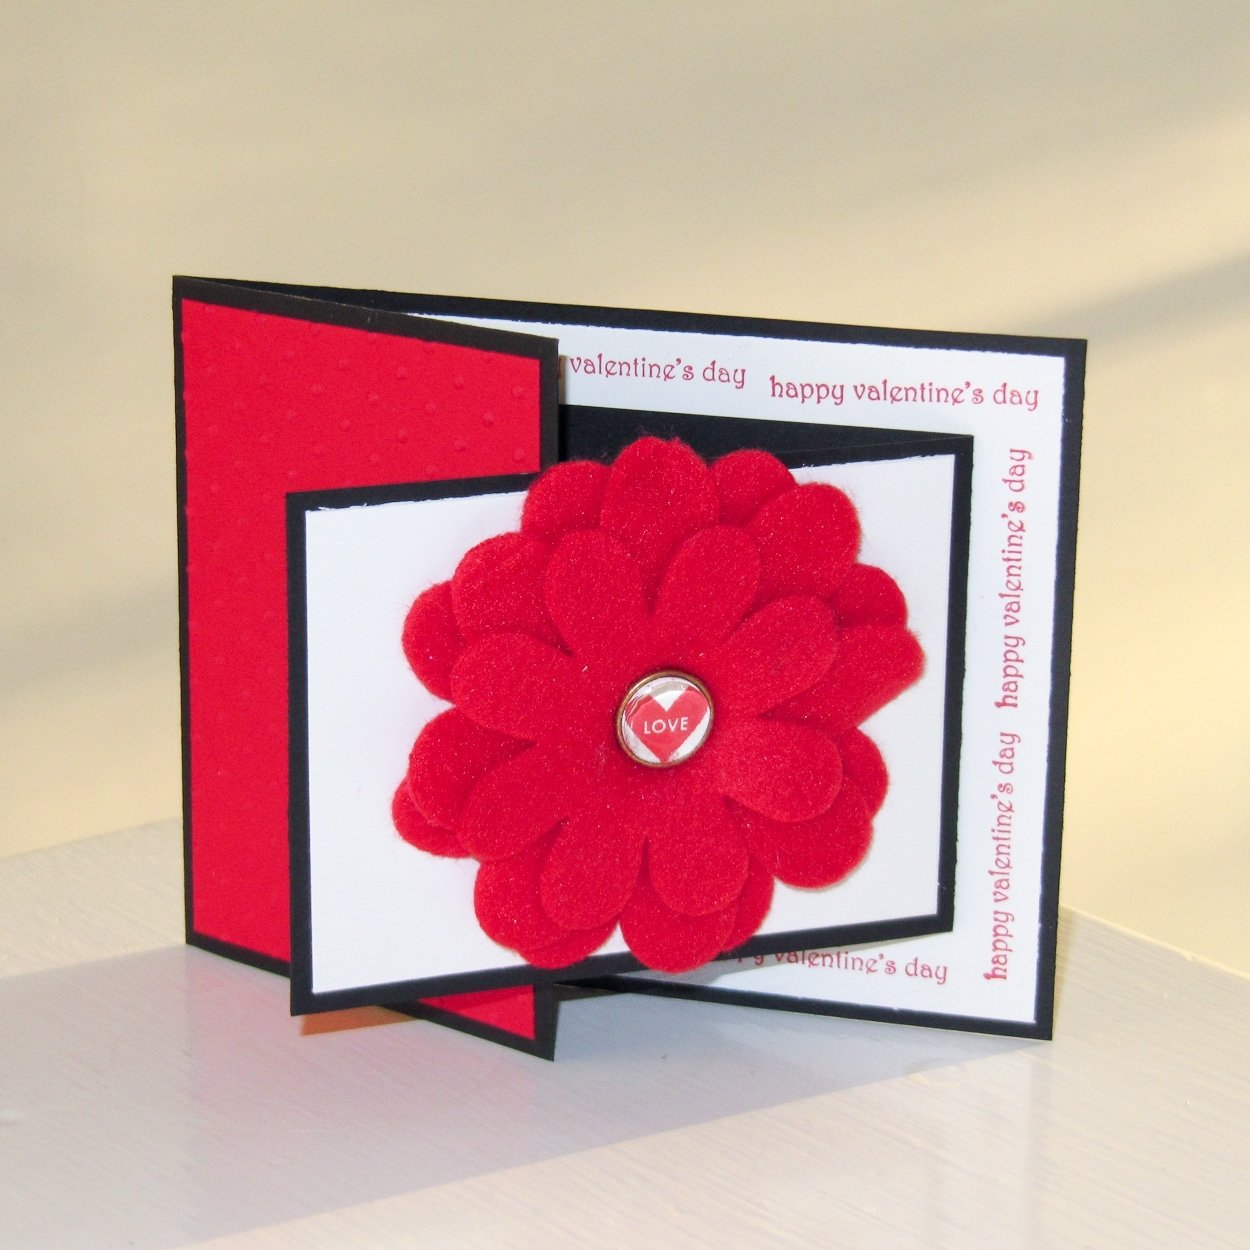 10 Fashionable Stampin Up Valentine Card Ideas stampin up demonstrator brandy cox share a charming card that 2020